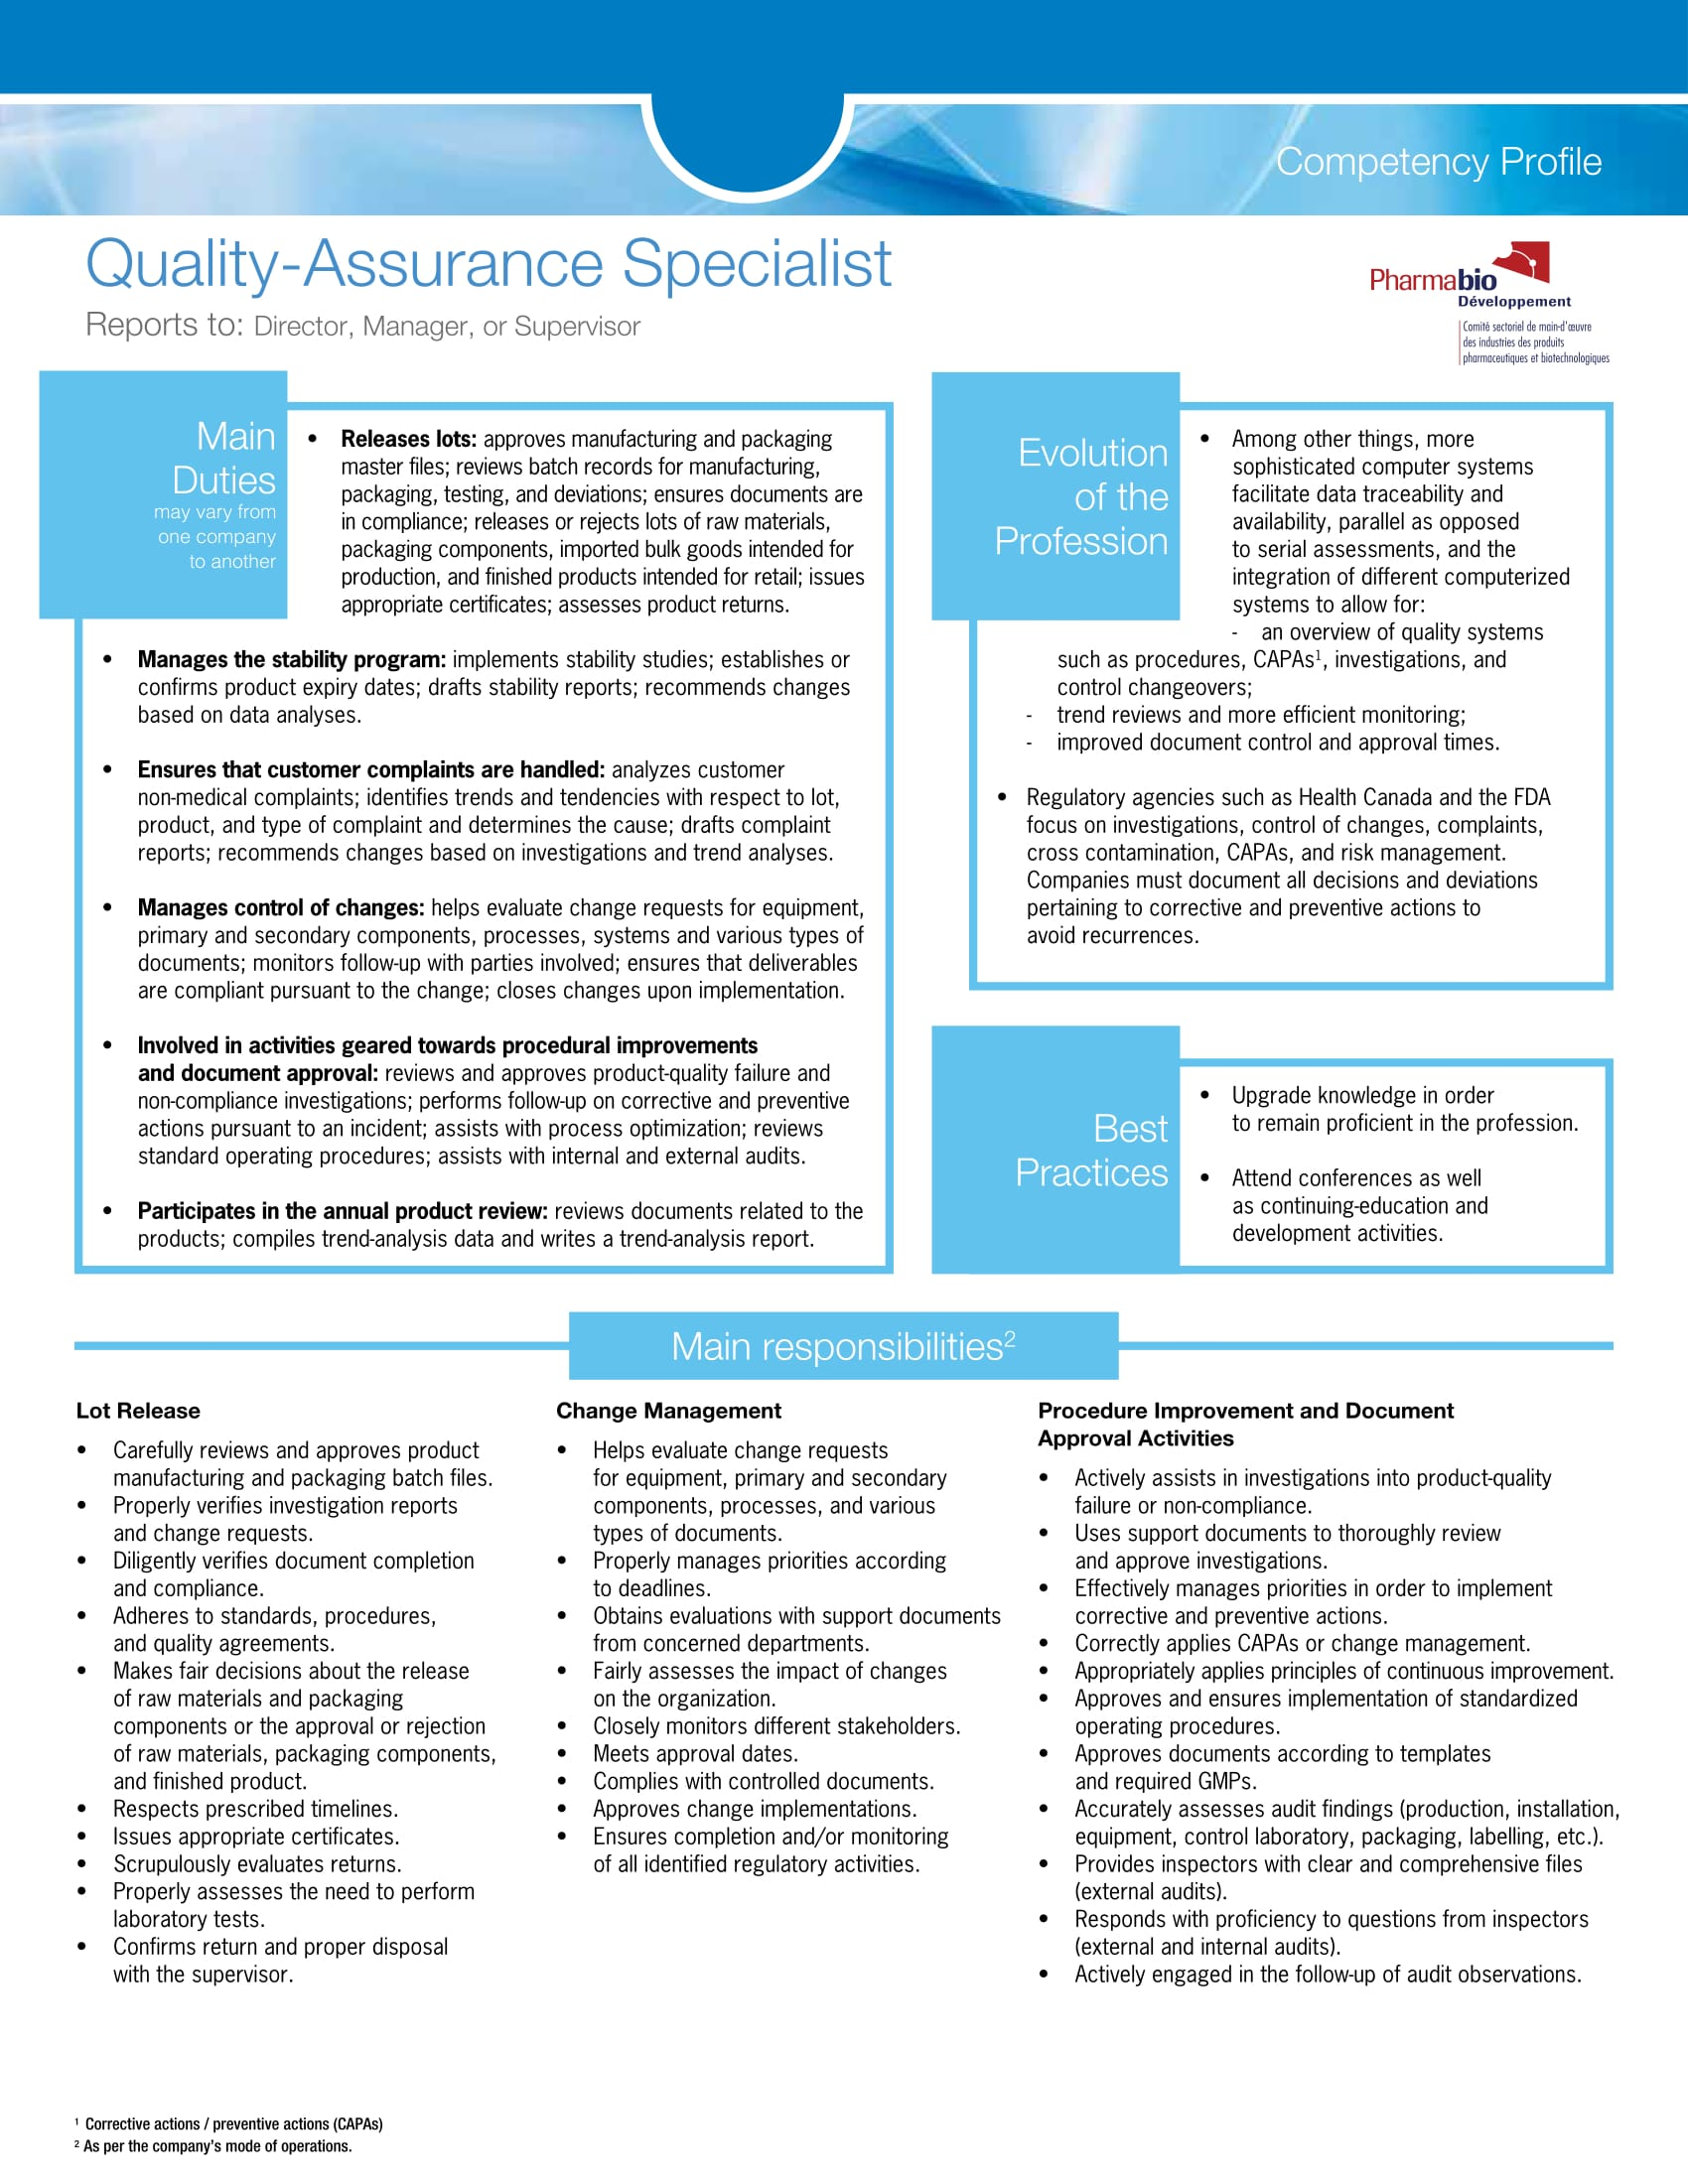 14 awesome quality assurance resume sample templates